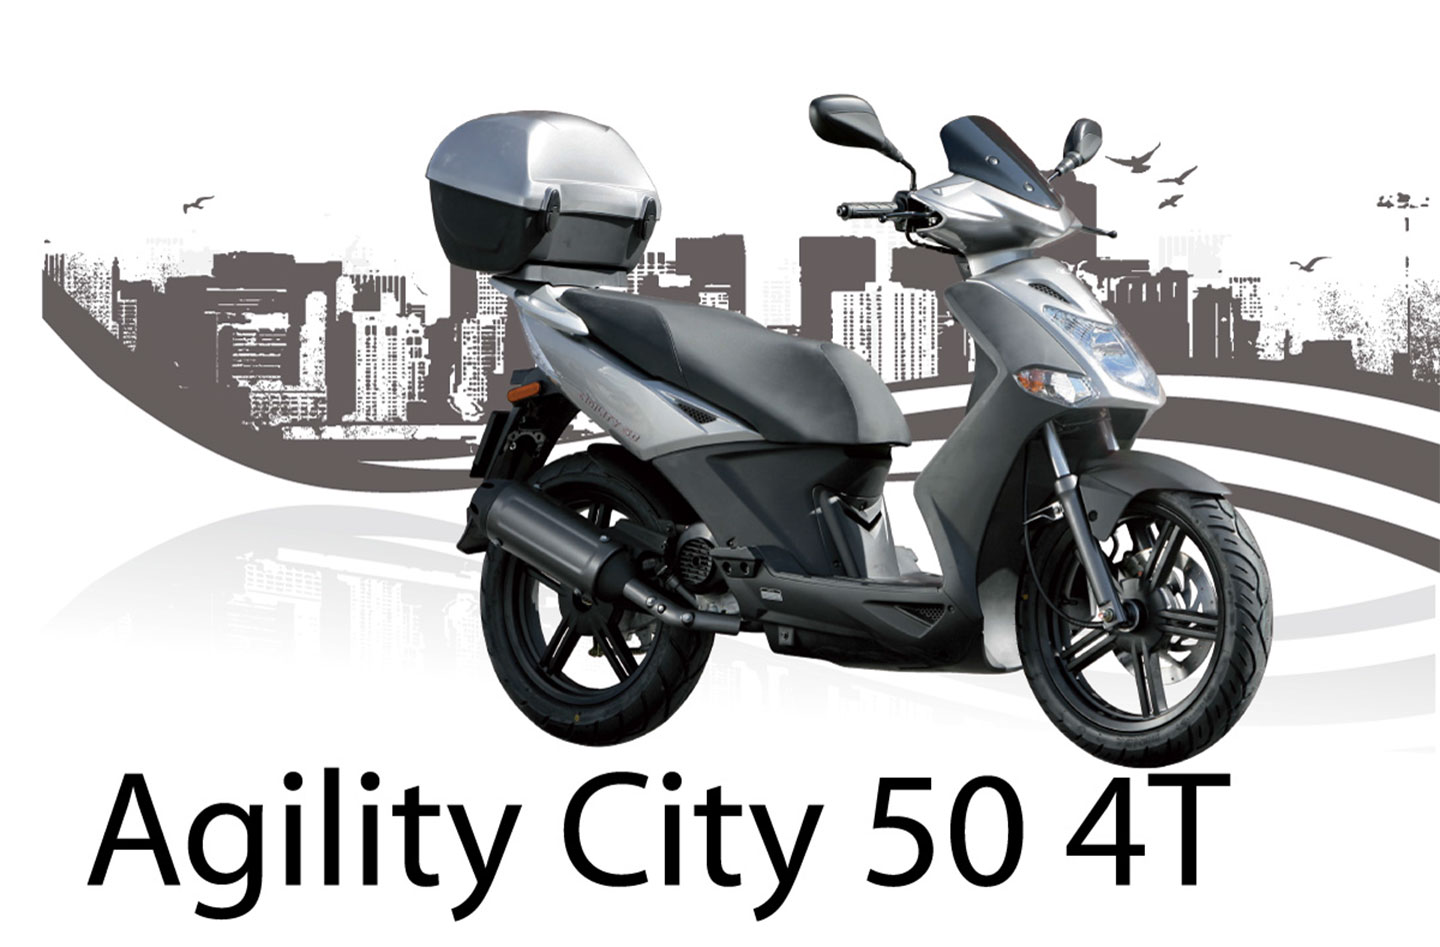 kymco agility city 50 4t specs 2013 2014 autoevolution. Black Bedroom Furniture Sets. Home Design Ideas